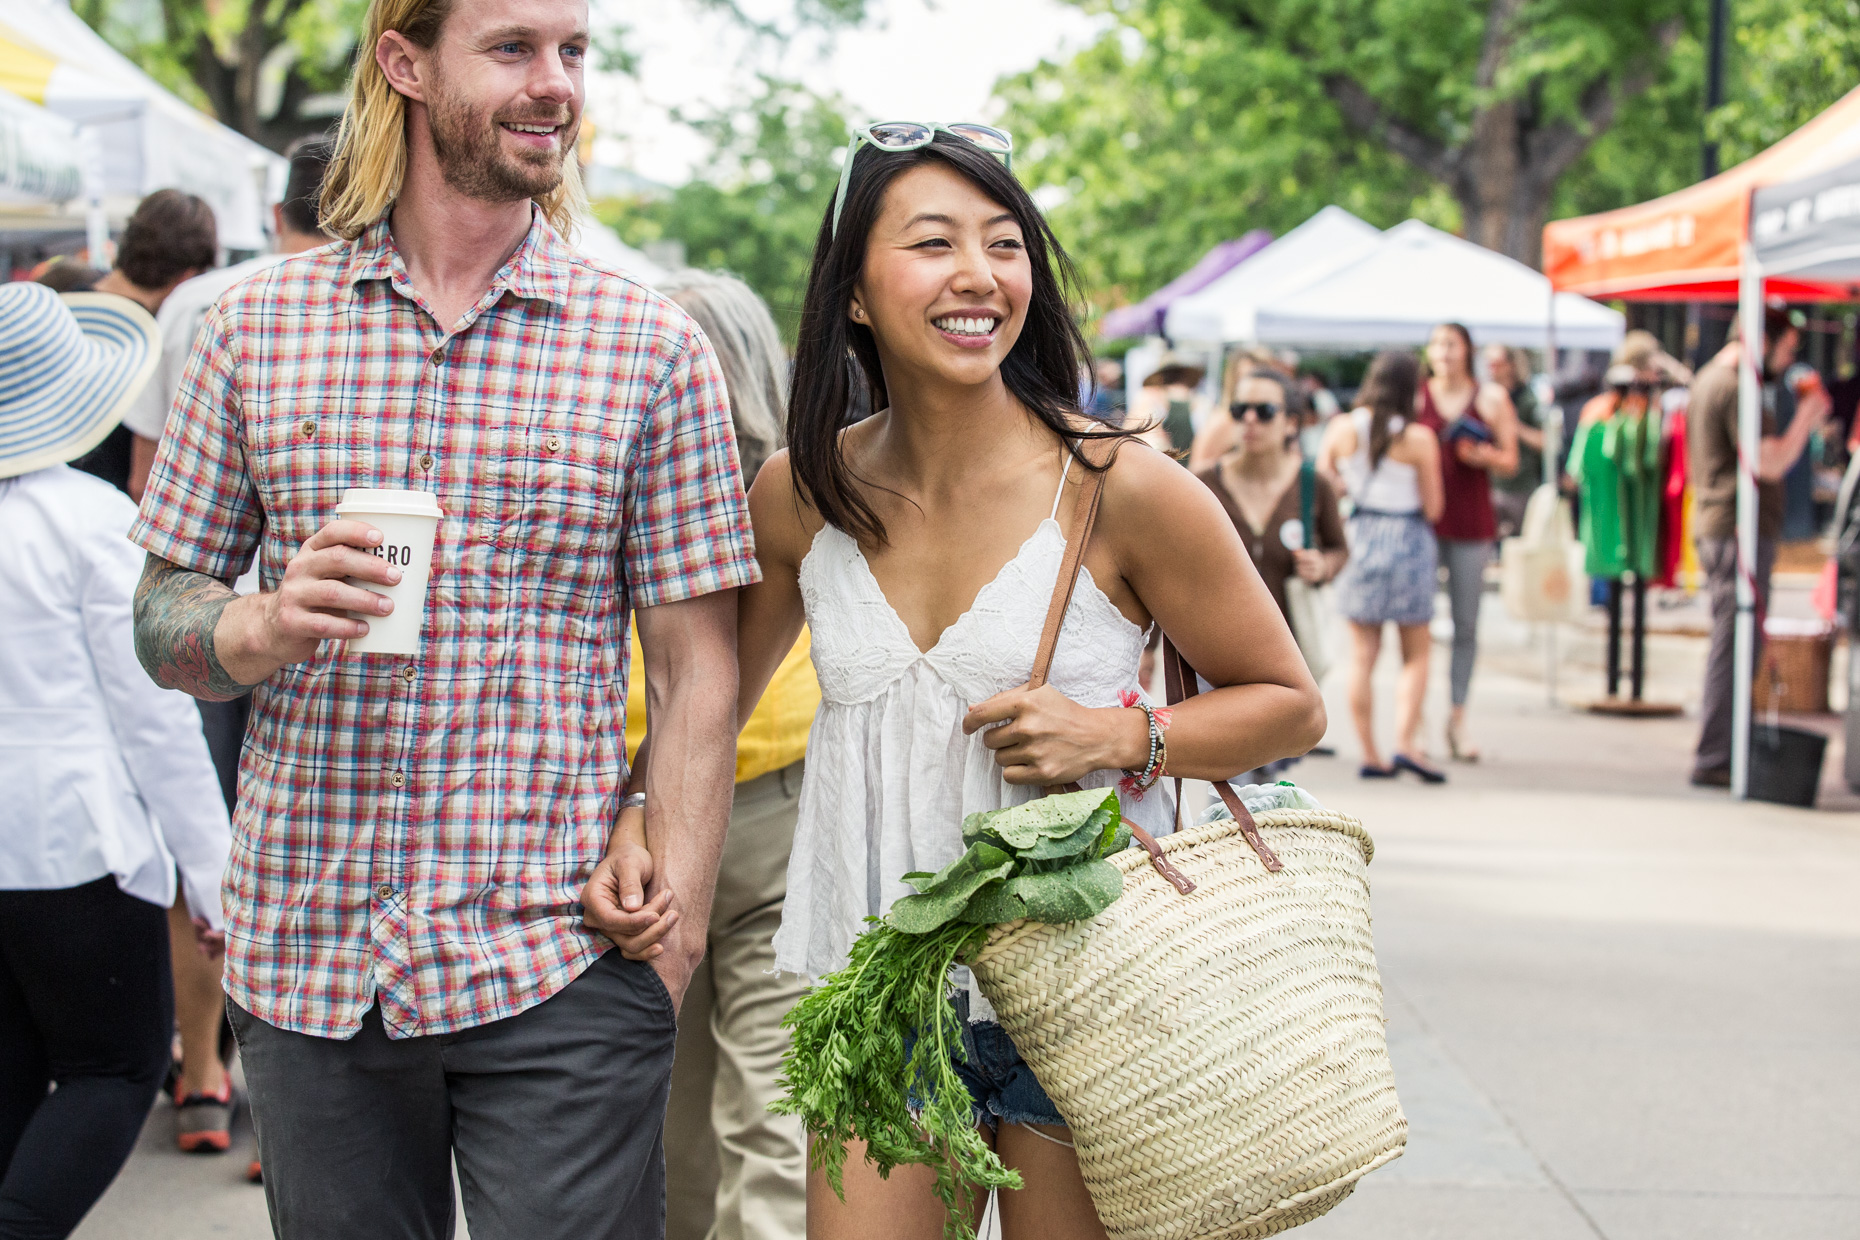 Boulder Farmers Market in Boulder, Colorado